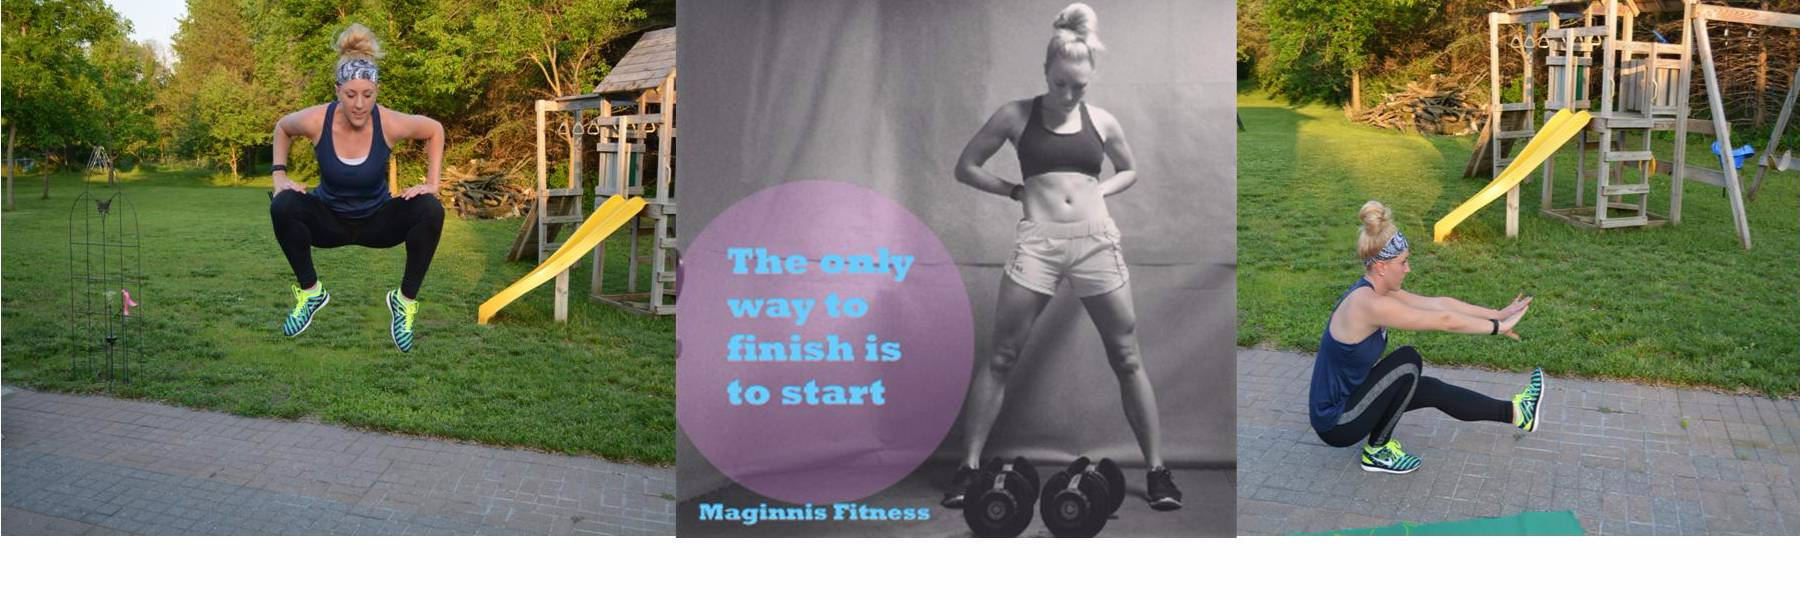 Maginnis Fitness - Online Fitness Network - Subscribe Today!